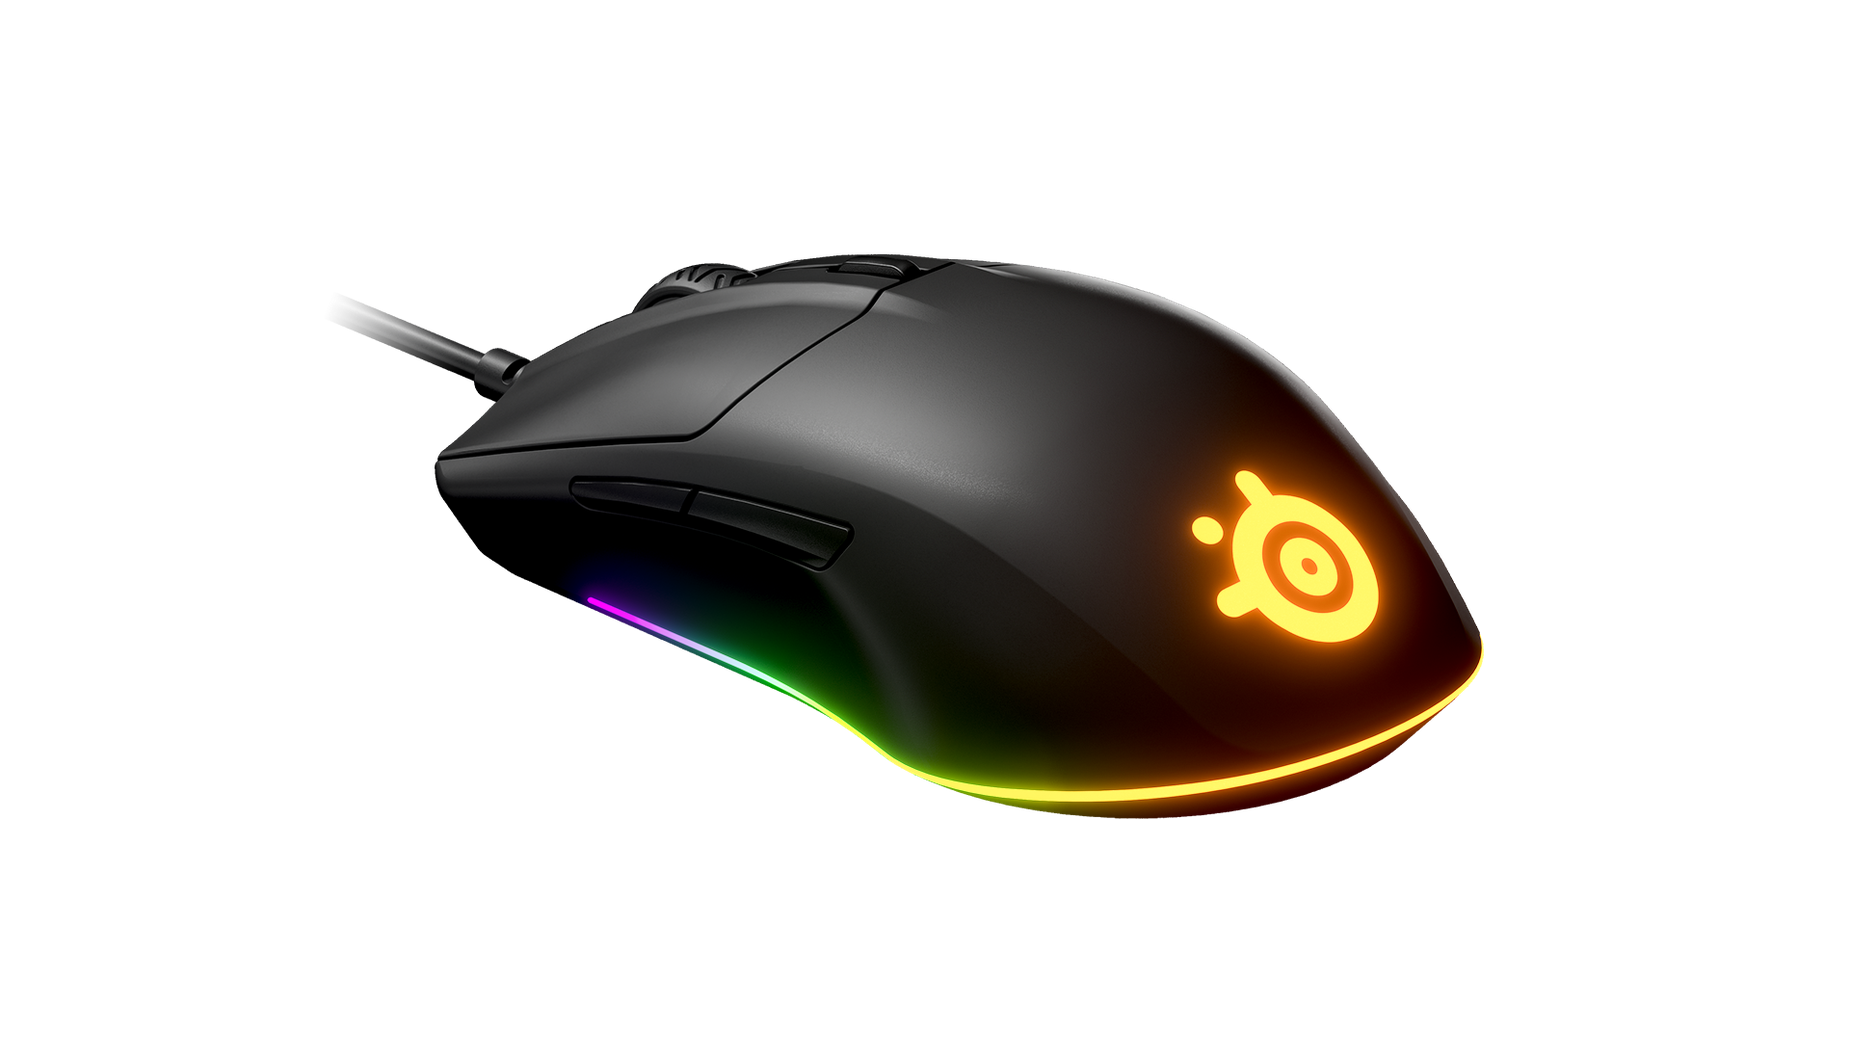 Steelseries - Rival 3 Gaming Mouse